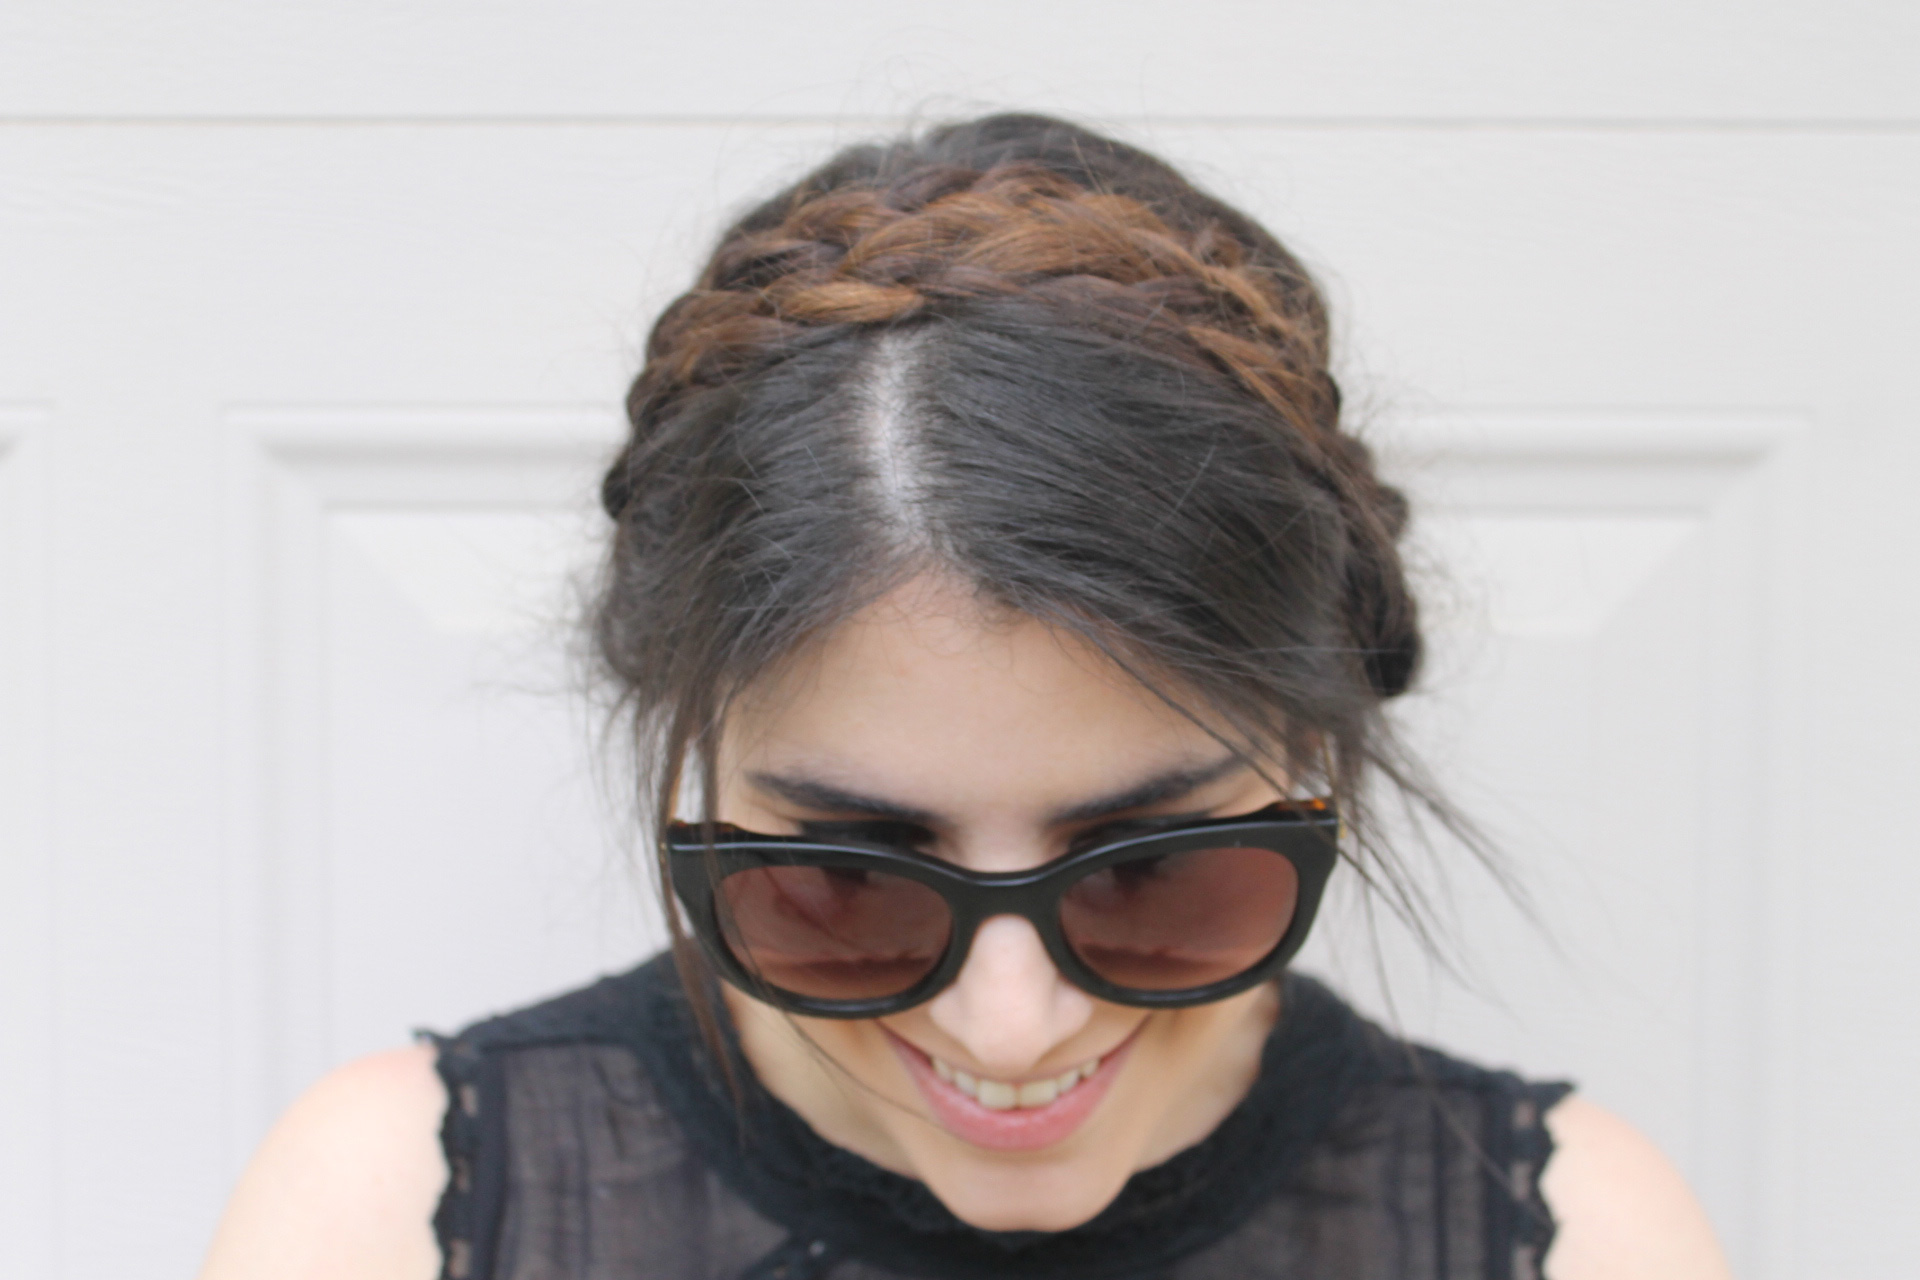 How to Get the Festival Back-to-Nature Beauty Look - Double-Braided Hair and Sunglasses